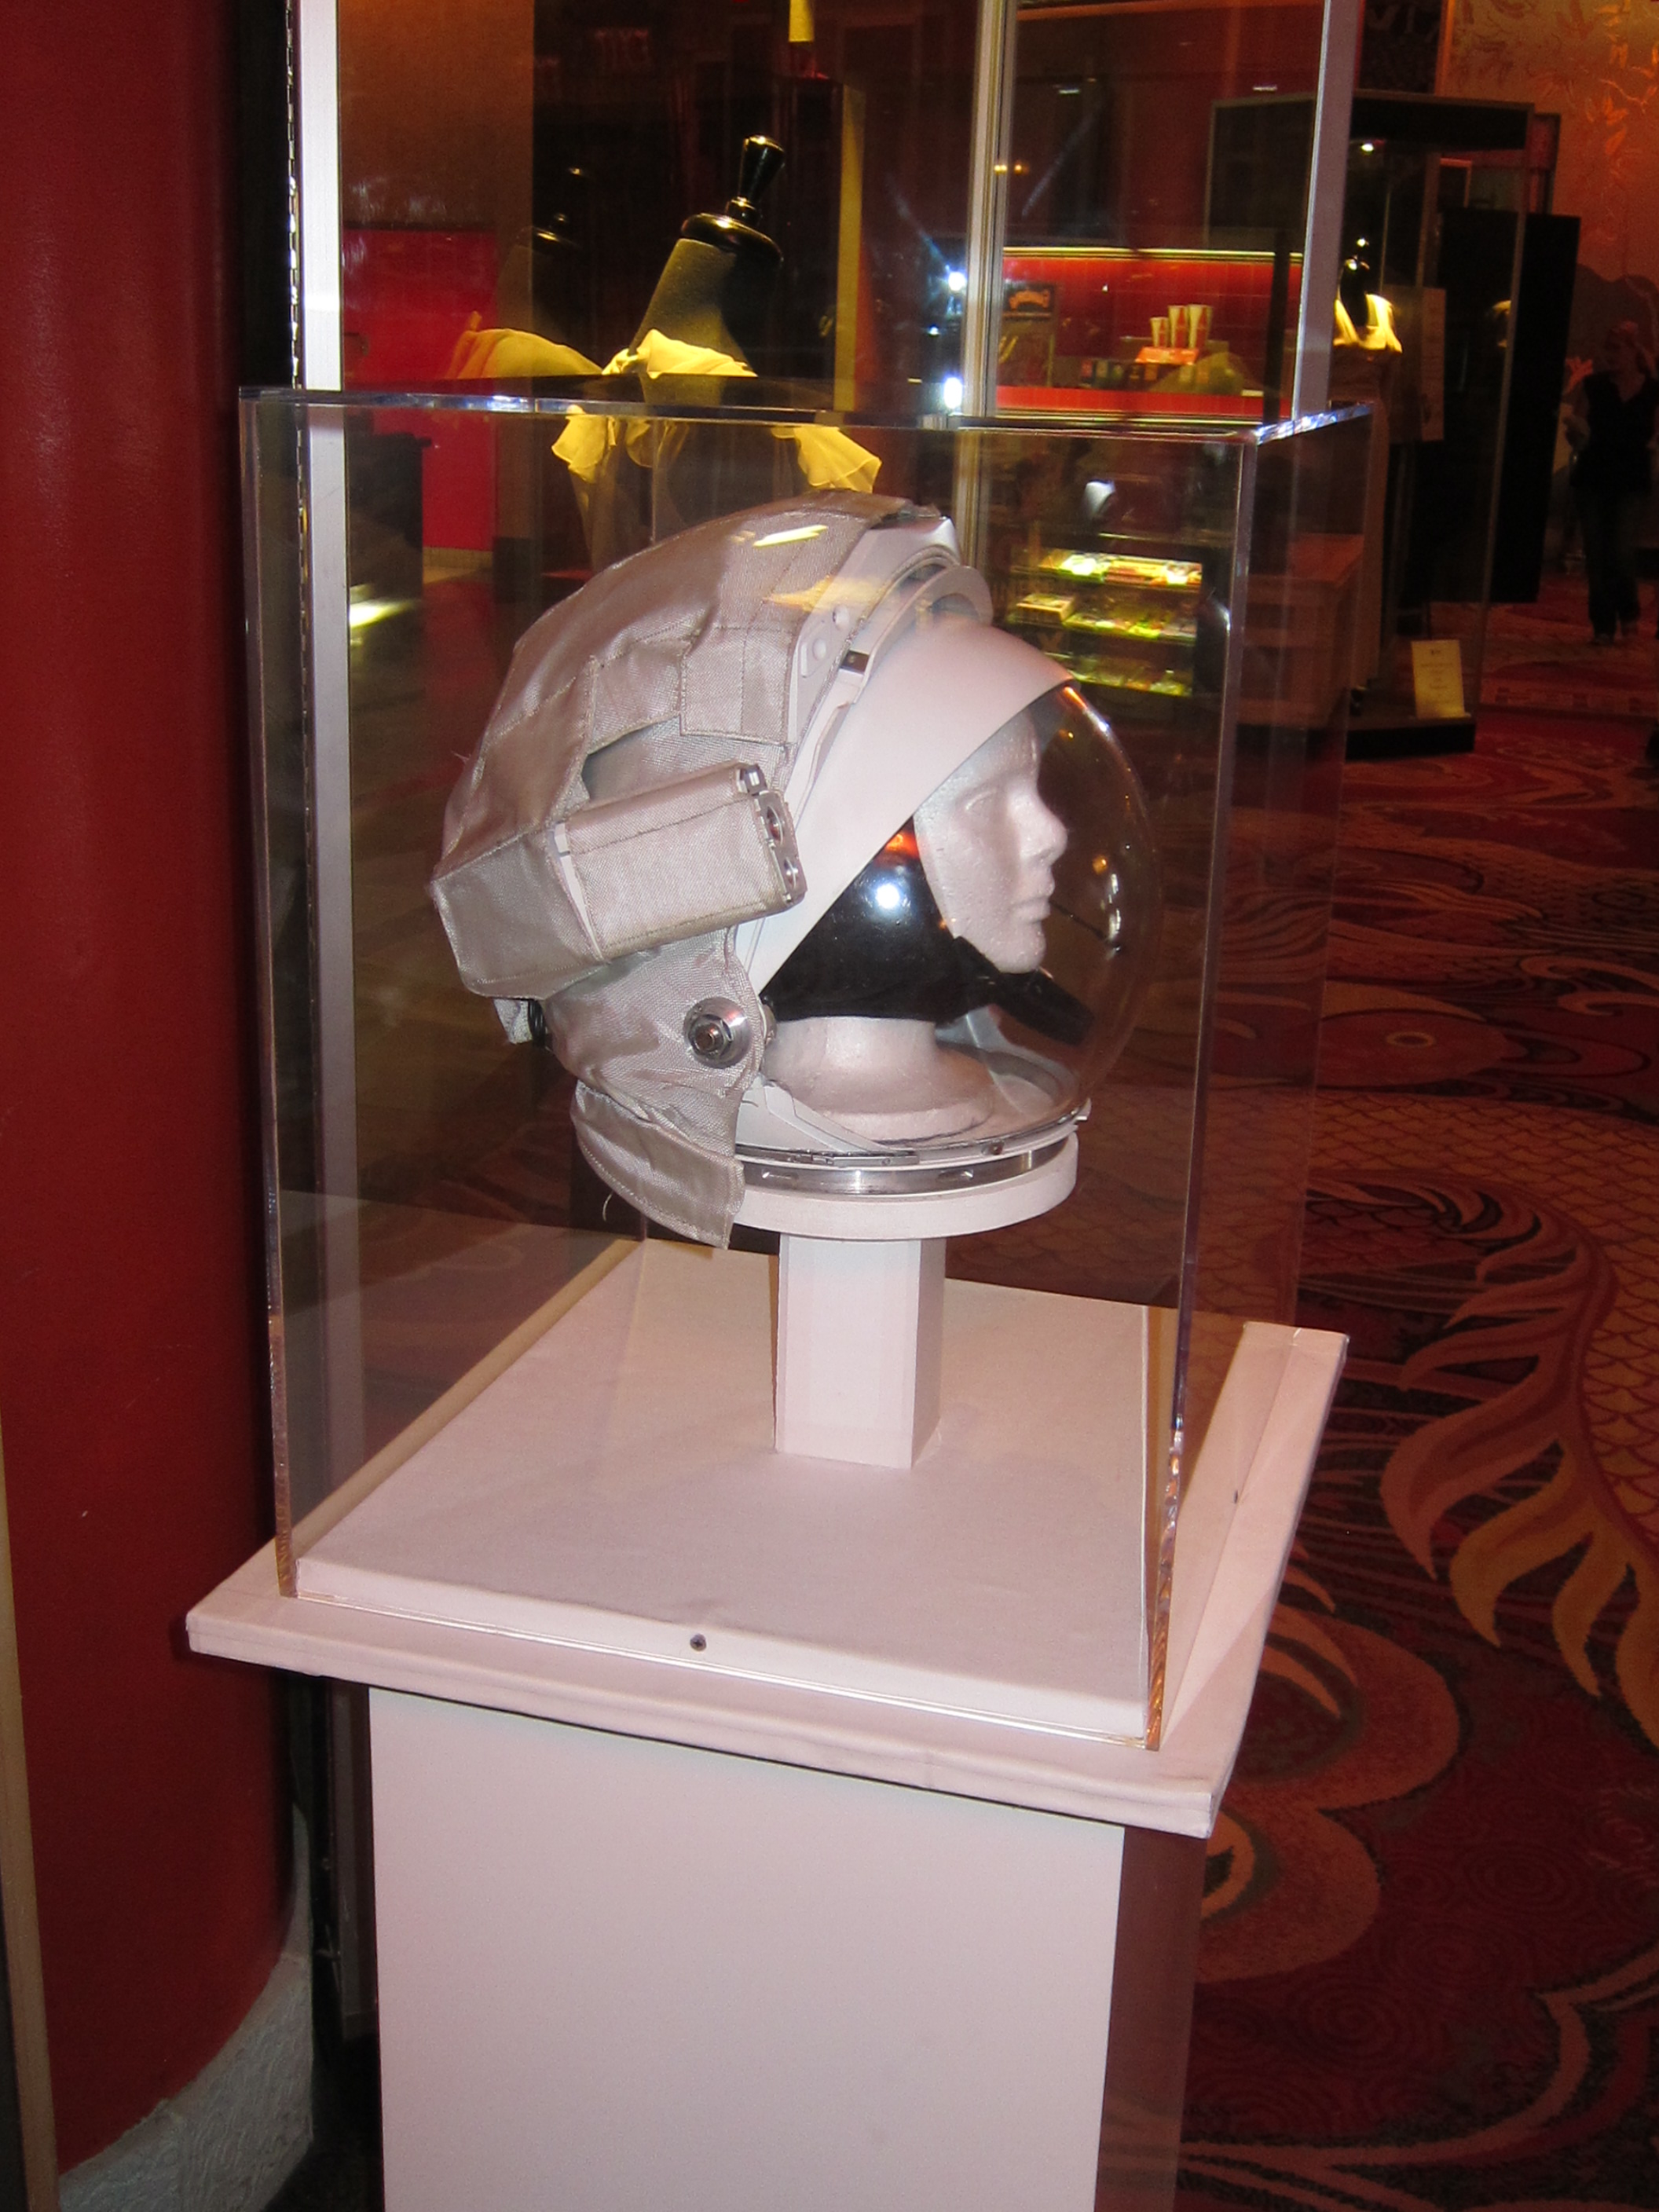 A space helmet worn by Sandra Bullock in the making of GRAVITY.